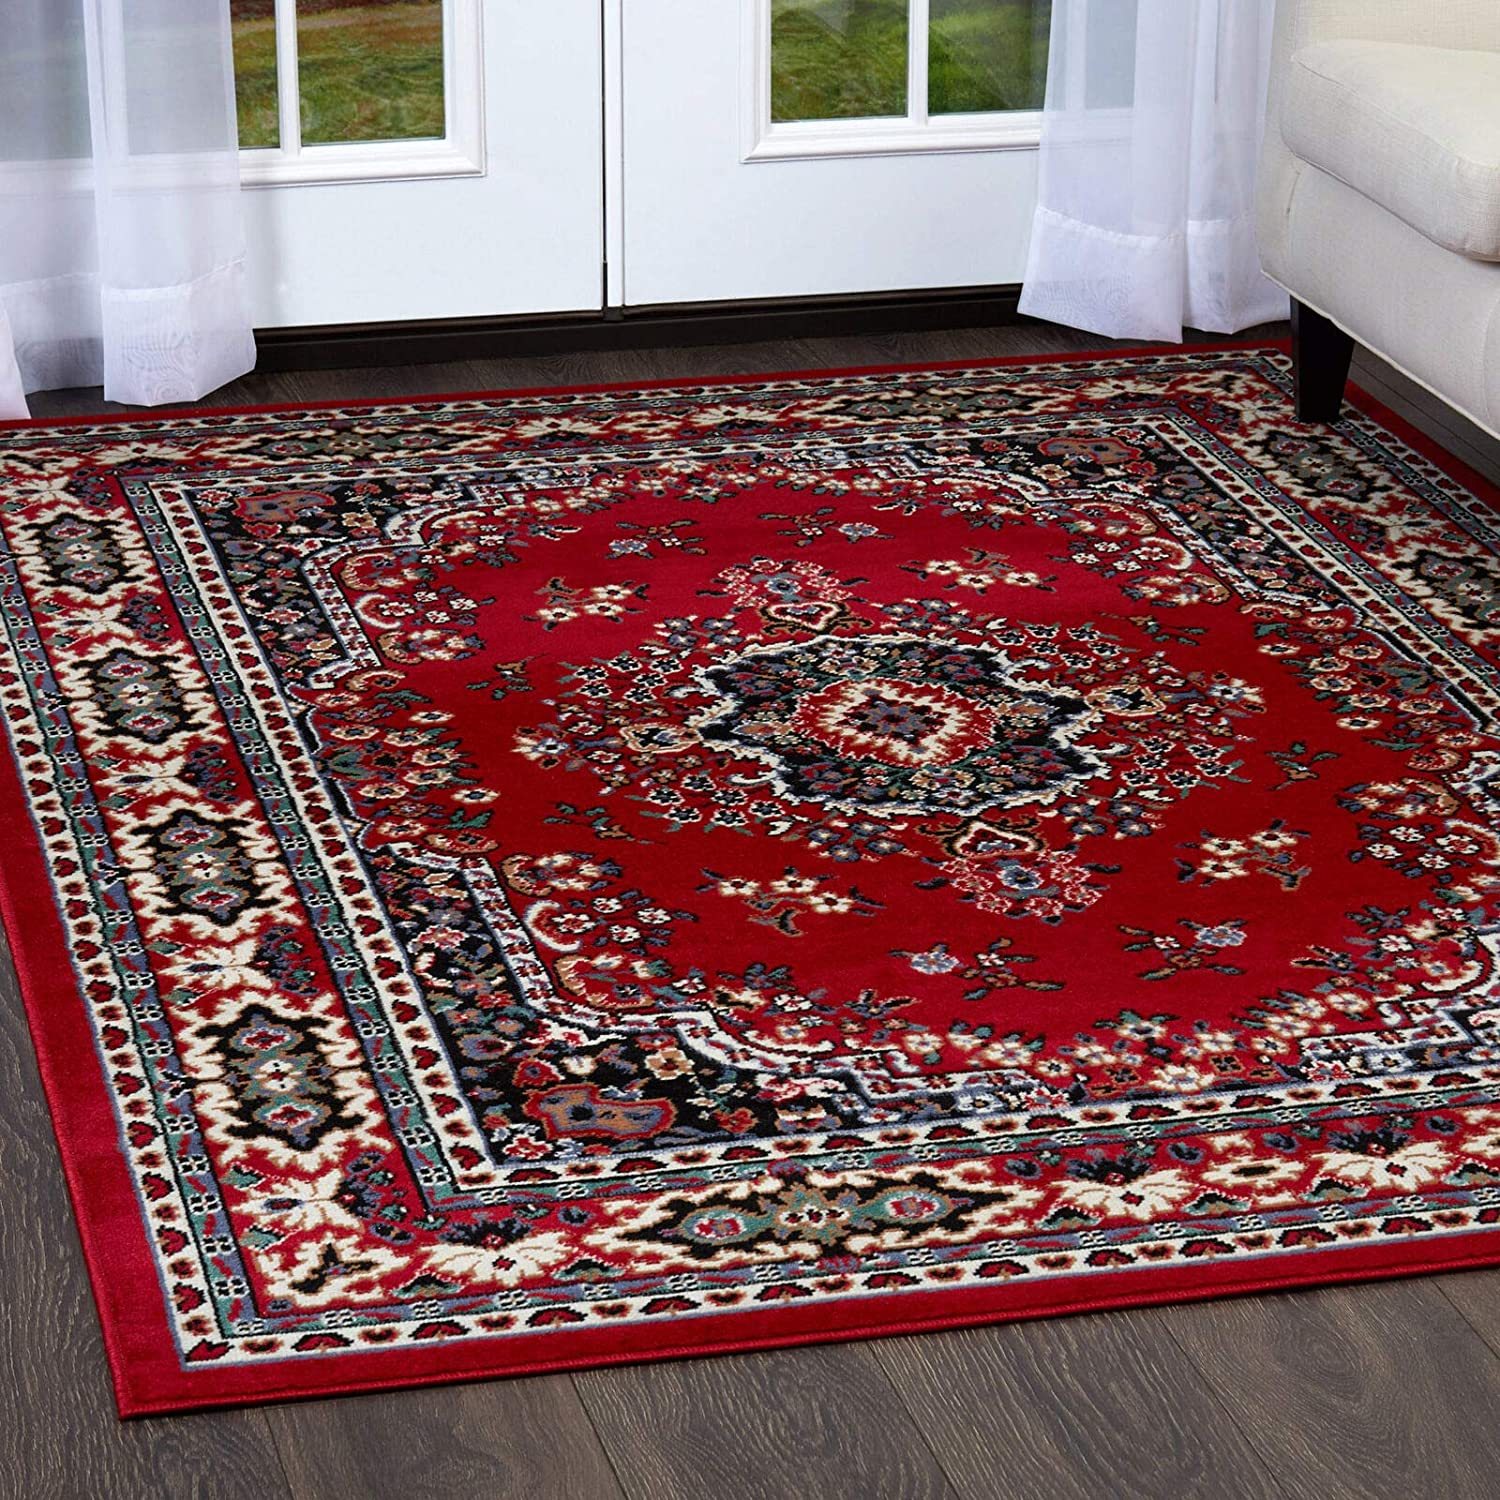 Red Traditional Max 81% OFF Oriental Medallion Area Carpet Rug 35% OFF Style Persien